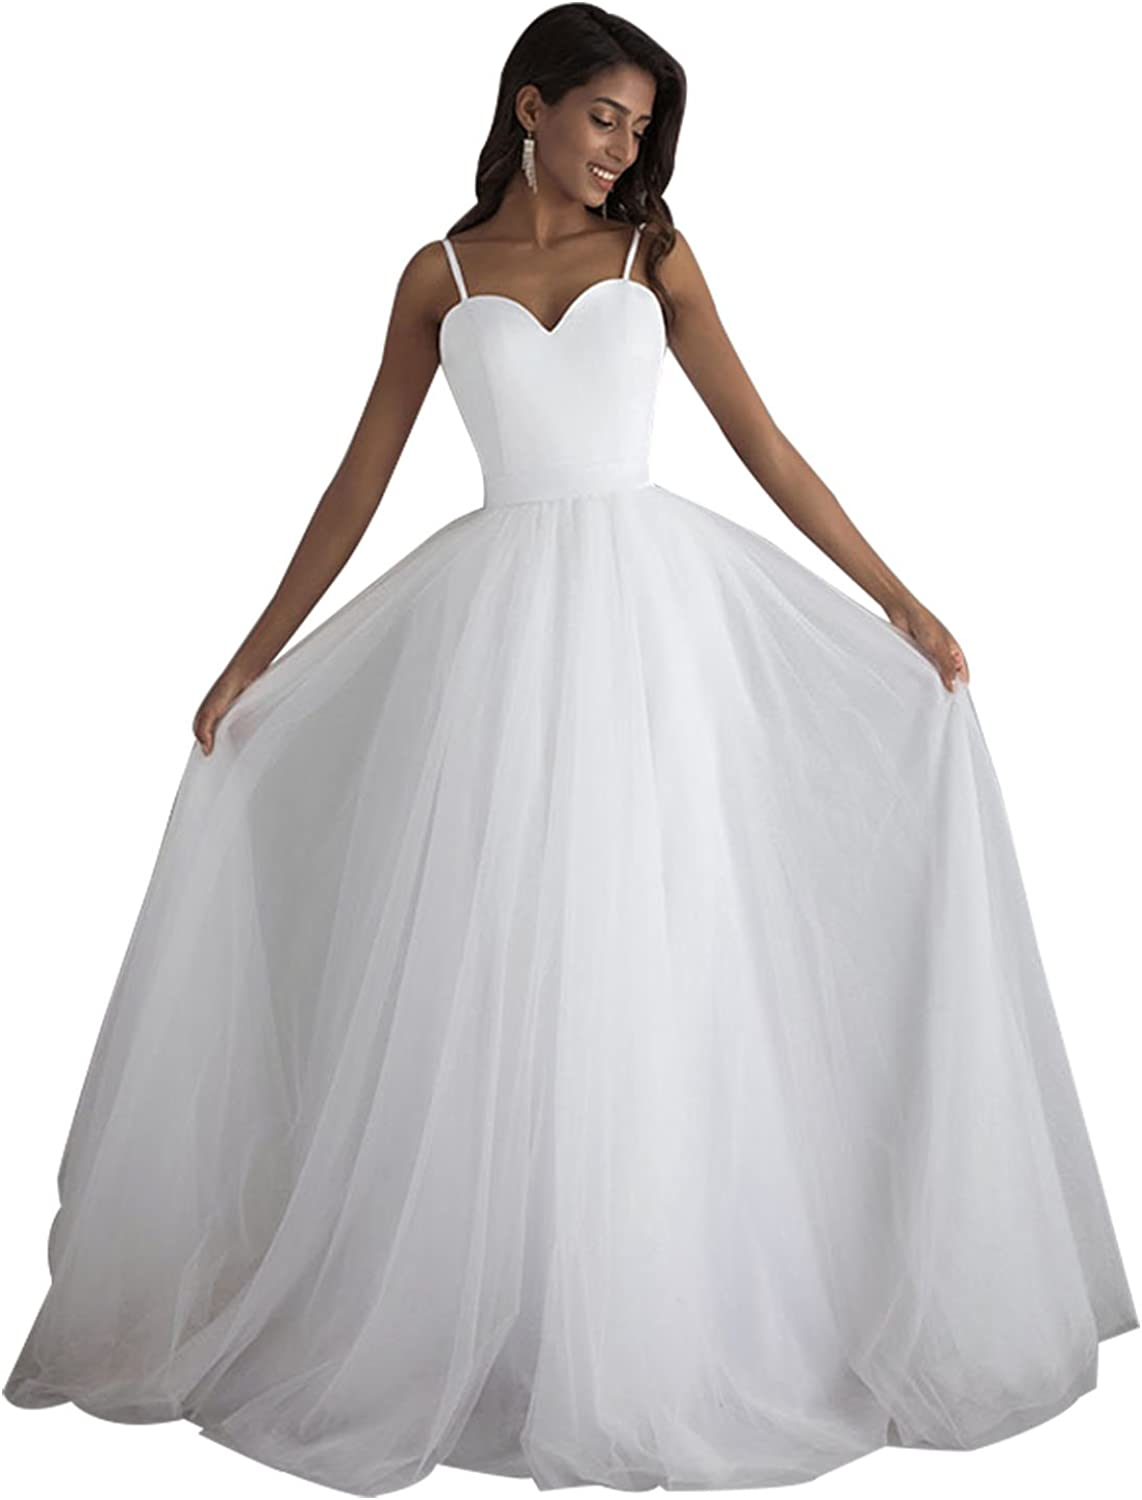 Epinkbridal Elegant Sweetheart Wedding Dress for Bride Spaghetti Straps A Line Tulle Bridal Gowns